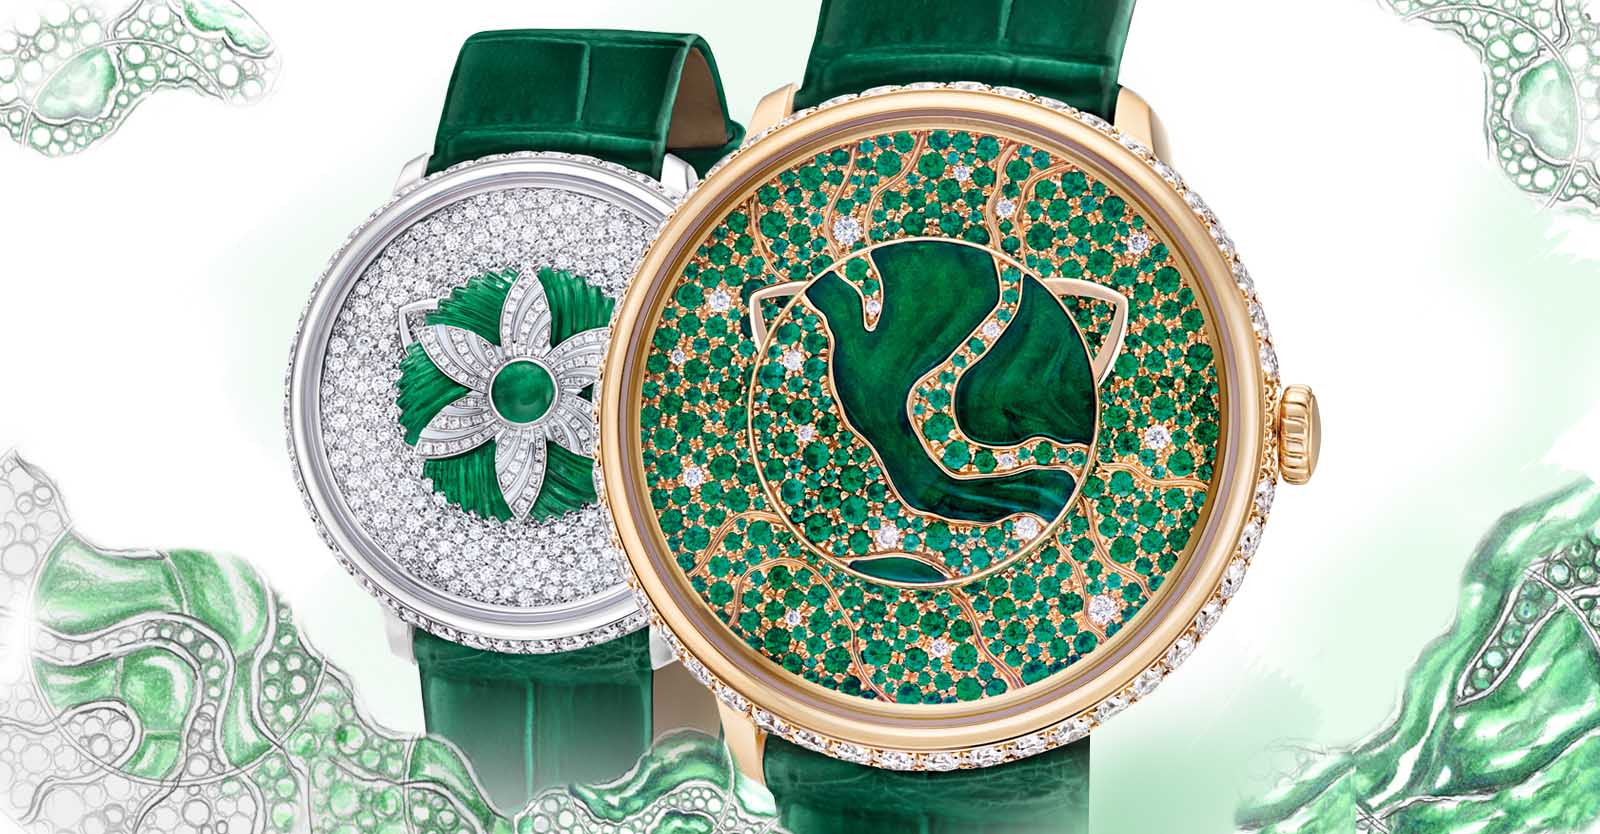 Two Ladies Wrist Watches from the Dalliance Collection. Fabergé Lady Libertine I Timepiece and Fabergé Lady Libertine II Timepiece.